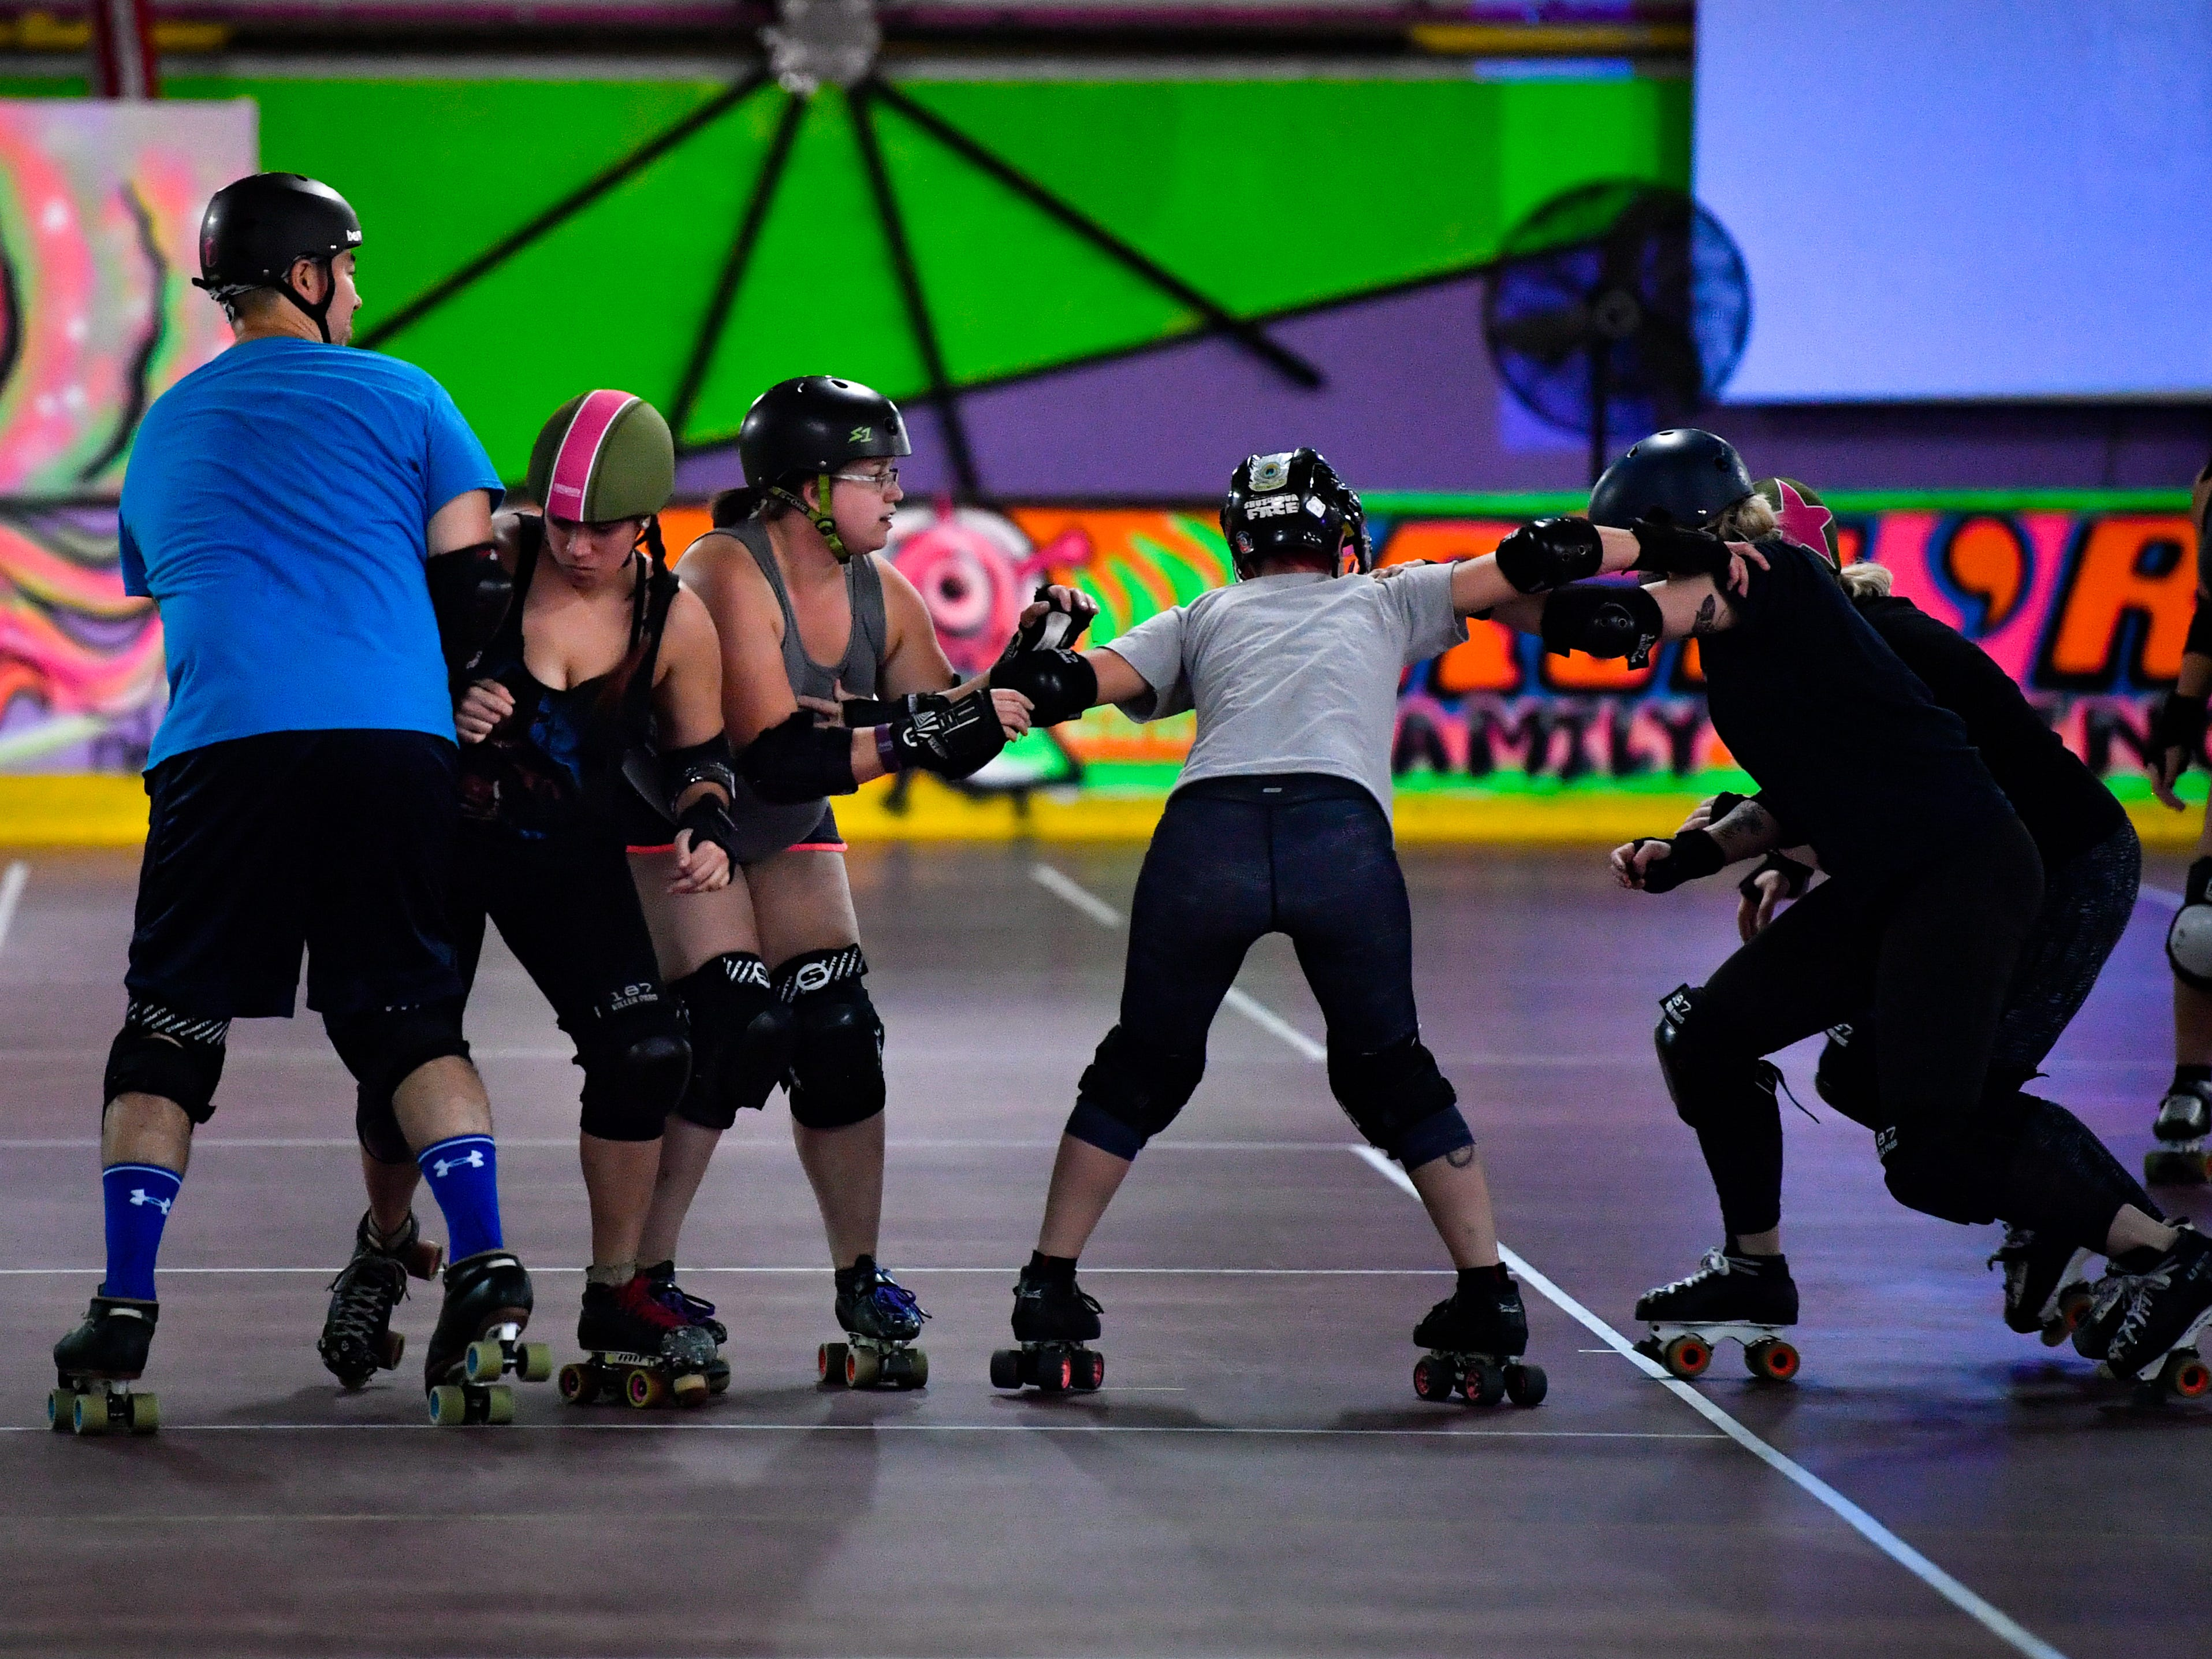 The York City Derby Dames scrimmage each other during practice at Roll 'R' Way. They have been the city's local derby team since 2013. Members come from all over the area to participate.